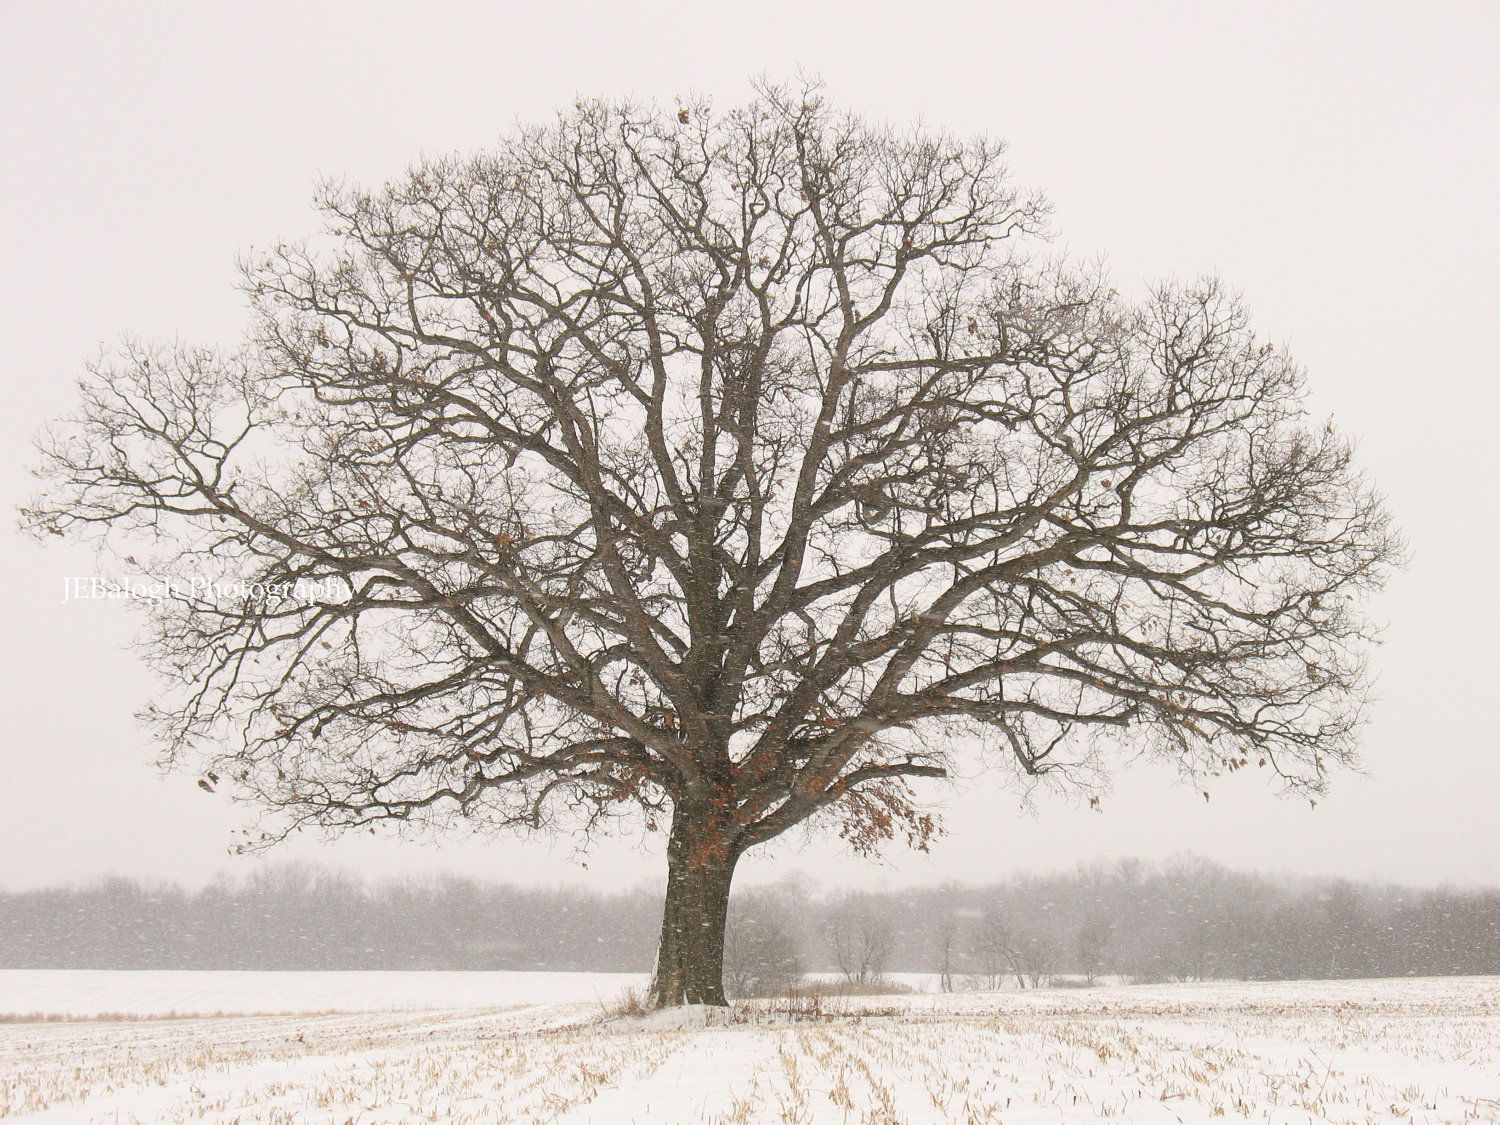 old tree in winter - Google Search   Trees   Pinterest ... Pictures Trees In Winter Pinterest